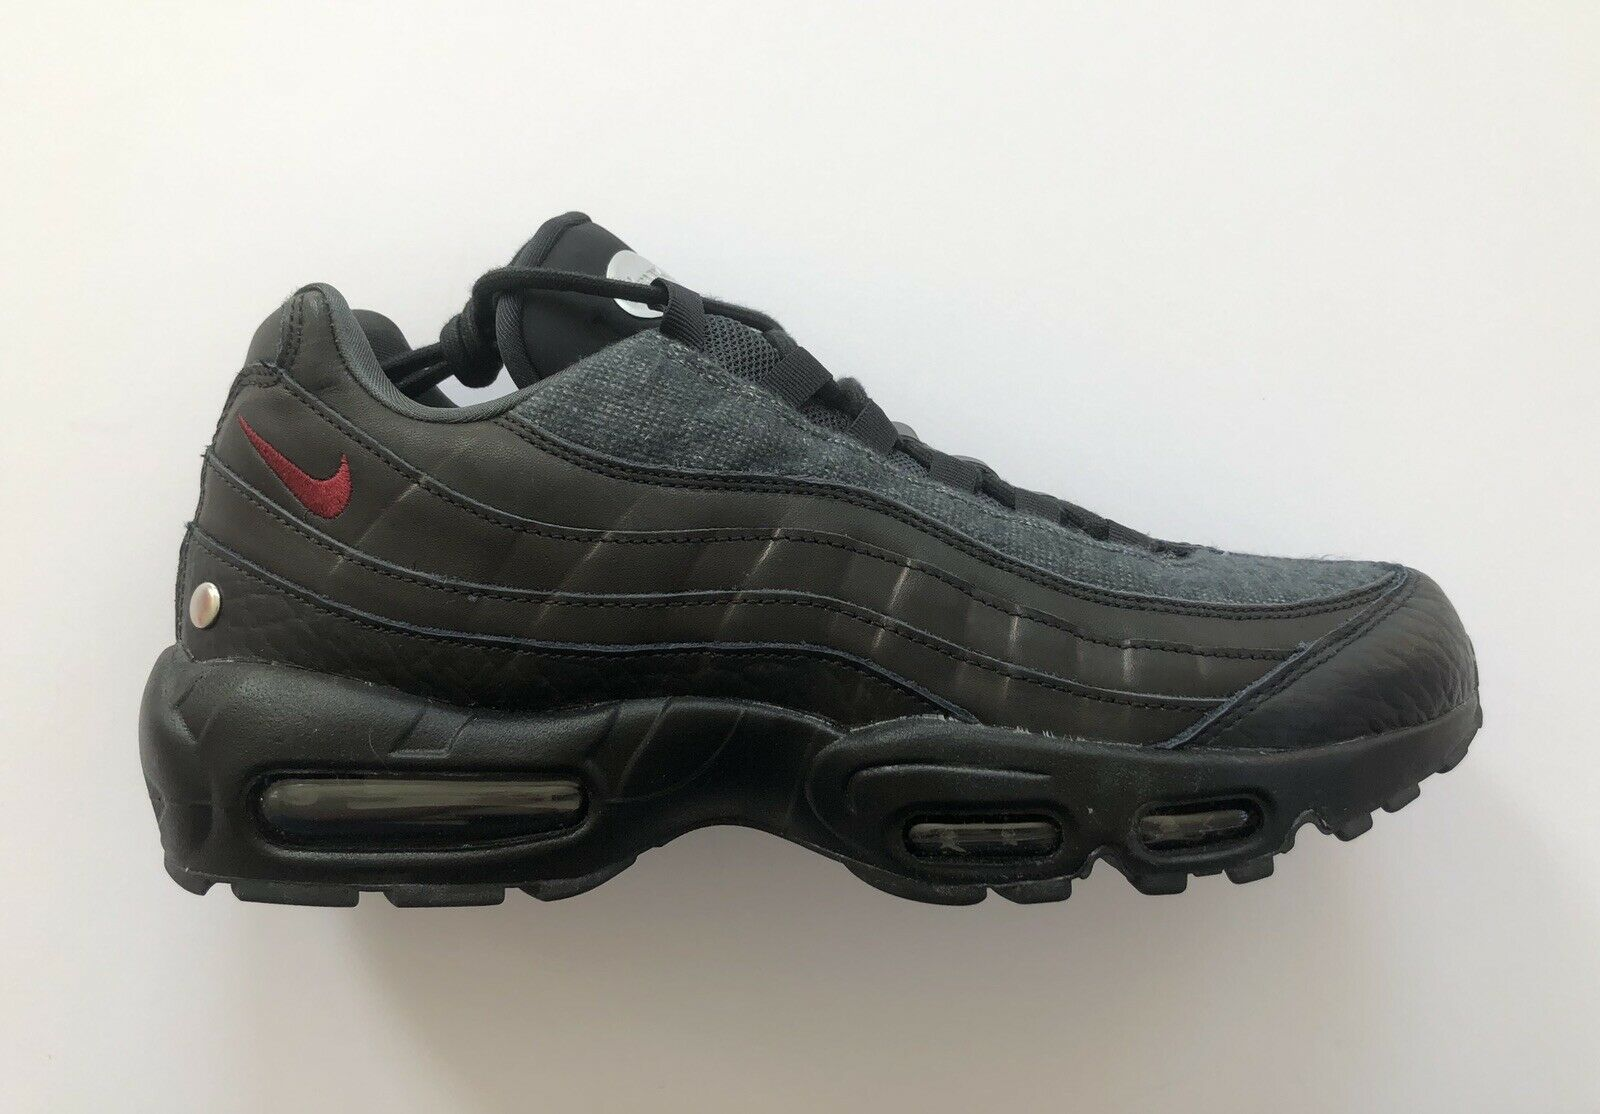 Nike Air Max 95 NRG nero rosso rosso rosso Anthracite Jacket Pack AT6146-001 Dimensione 10 3d92dd